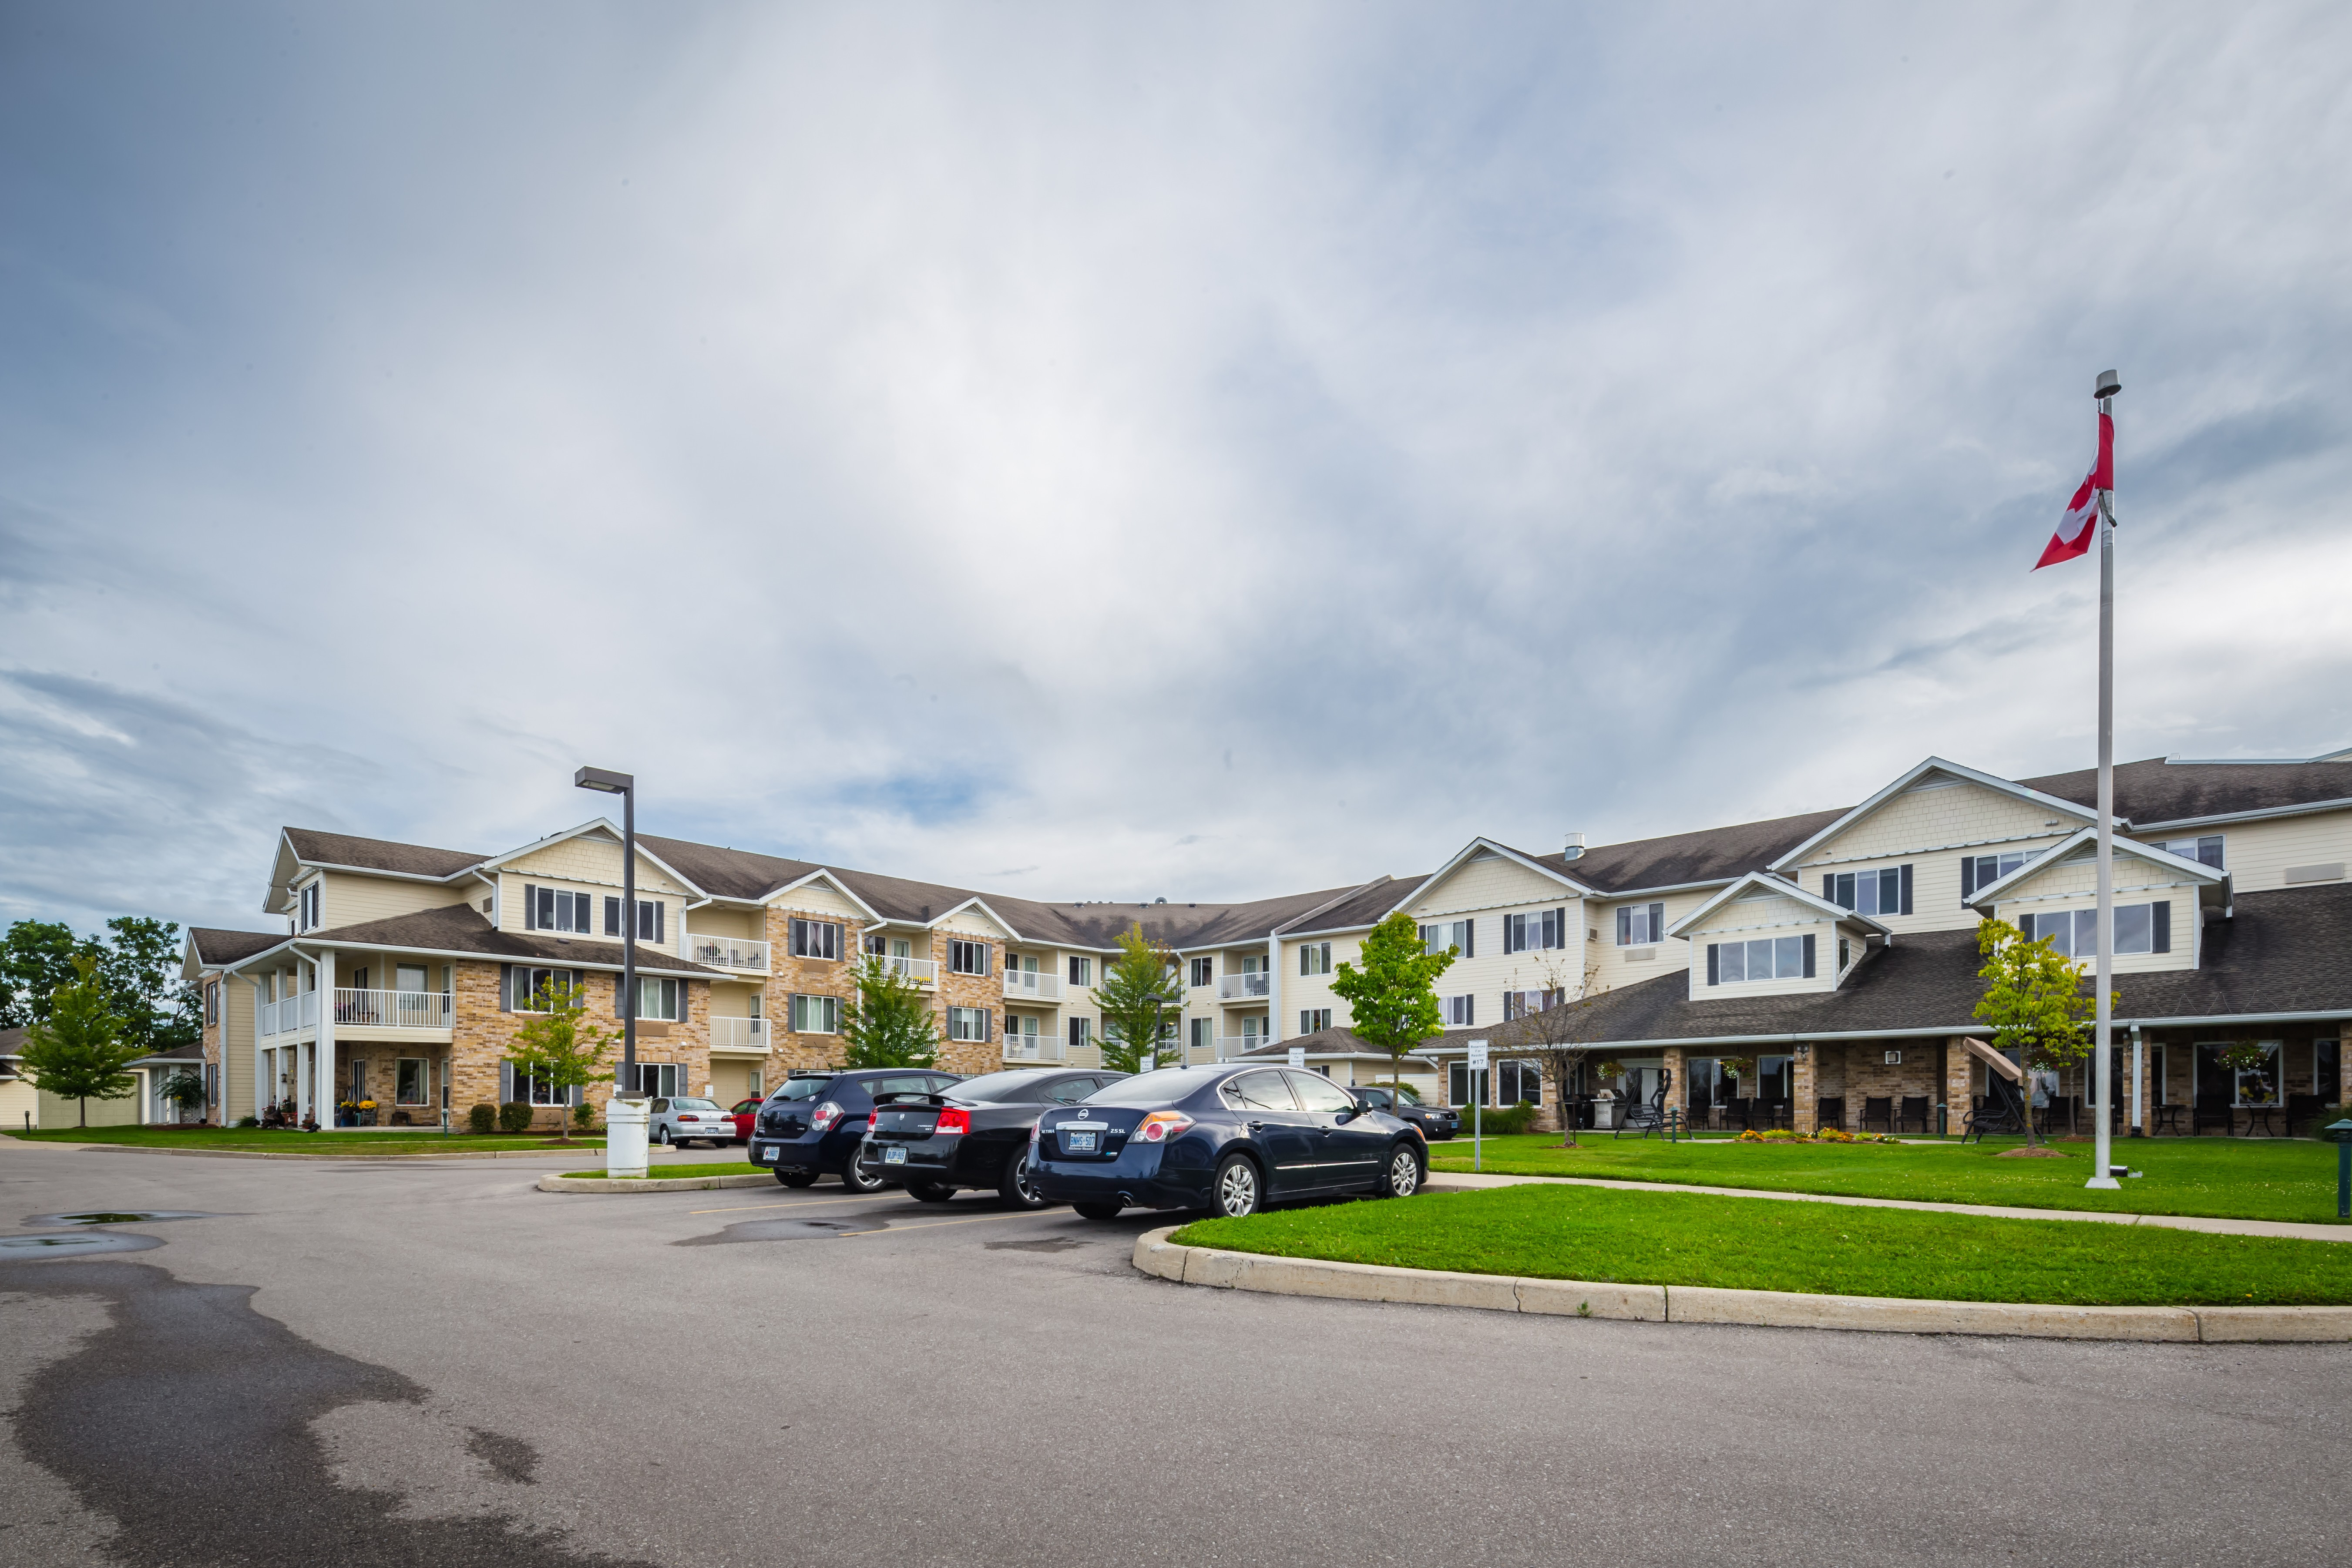 The Village of Laurelwood at 619 Wild Ginger Ave, Waterloo 0